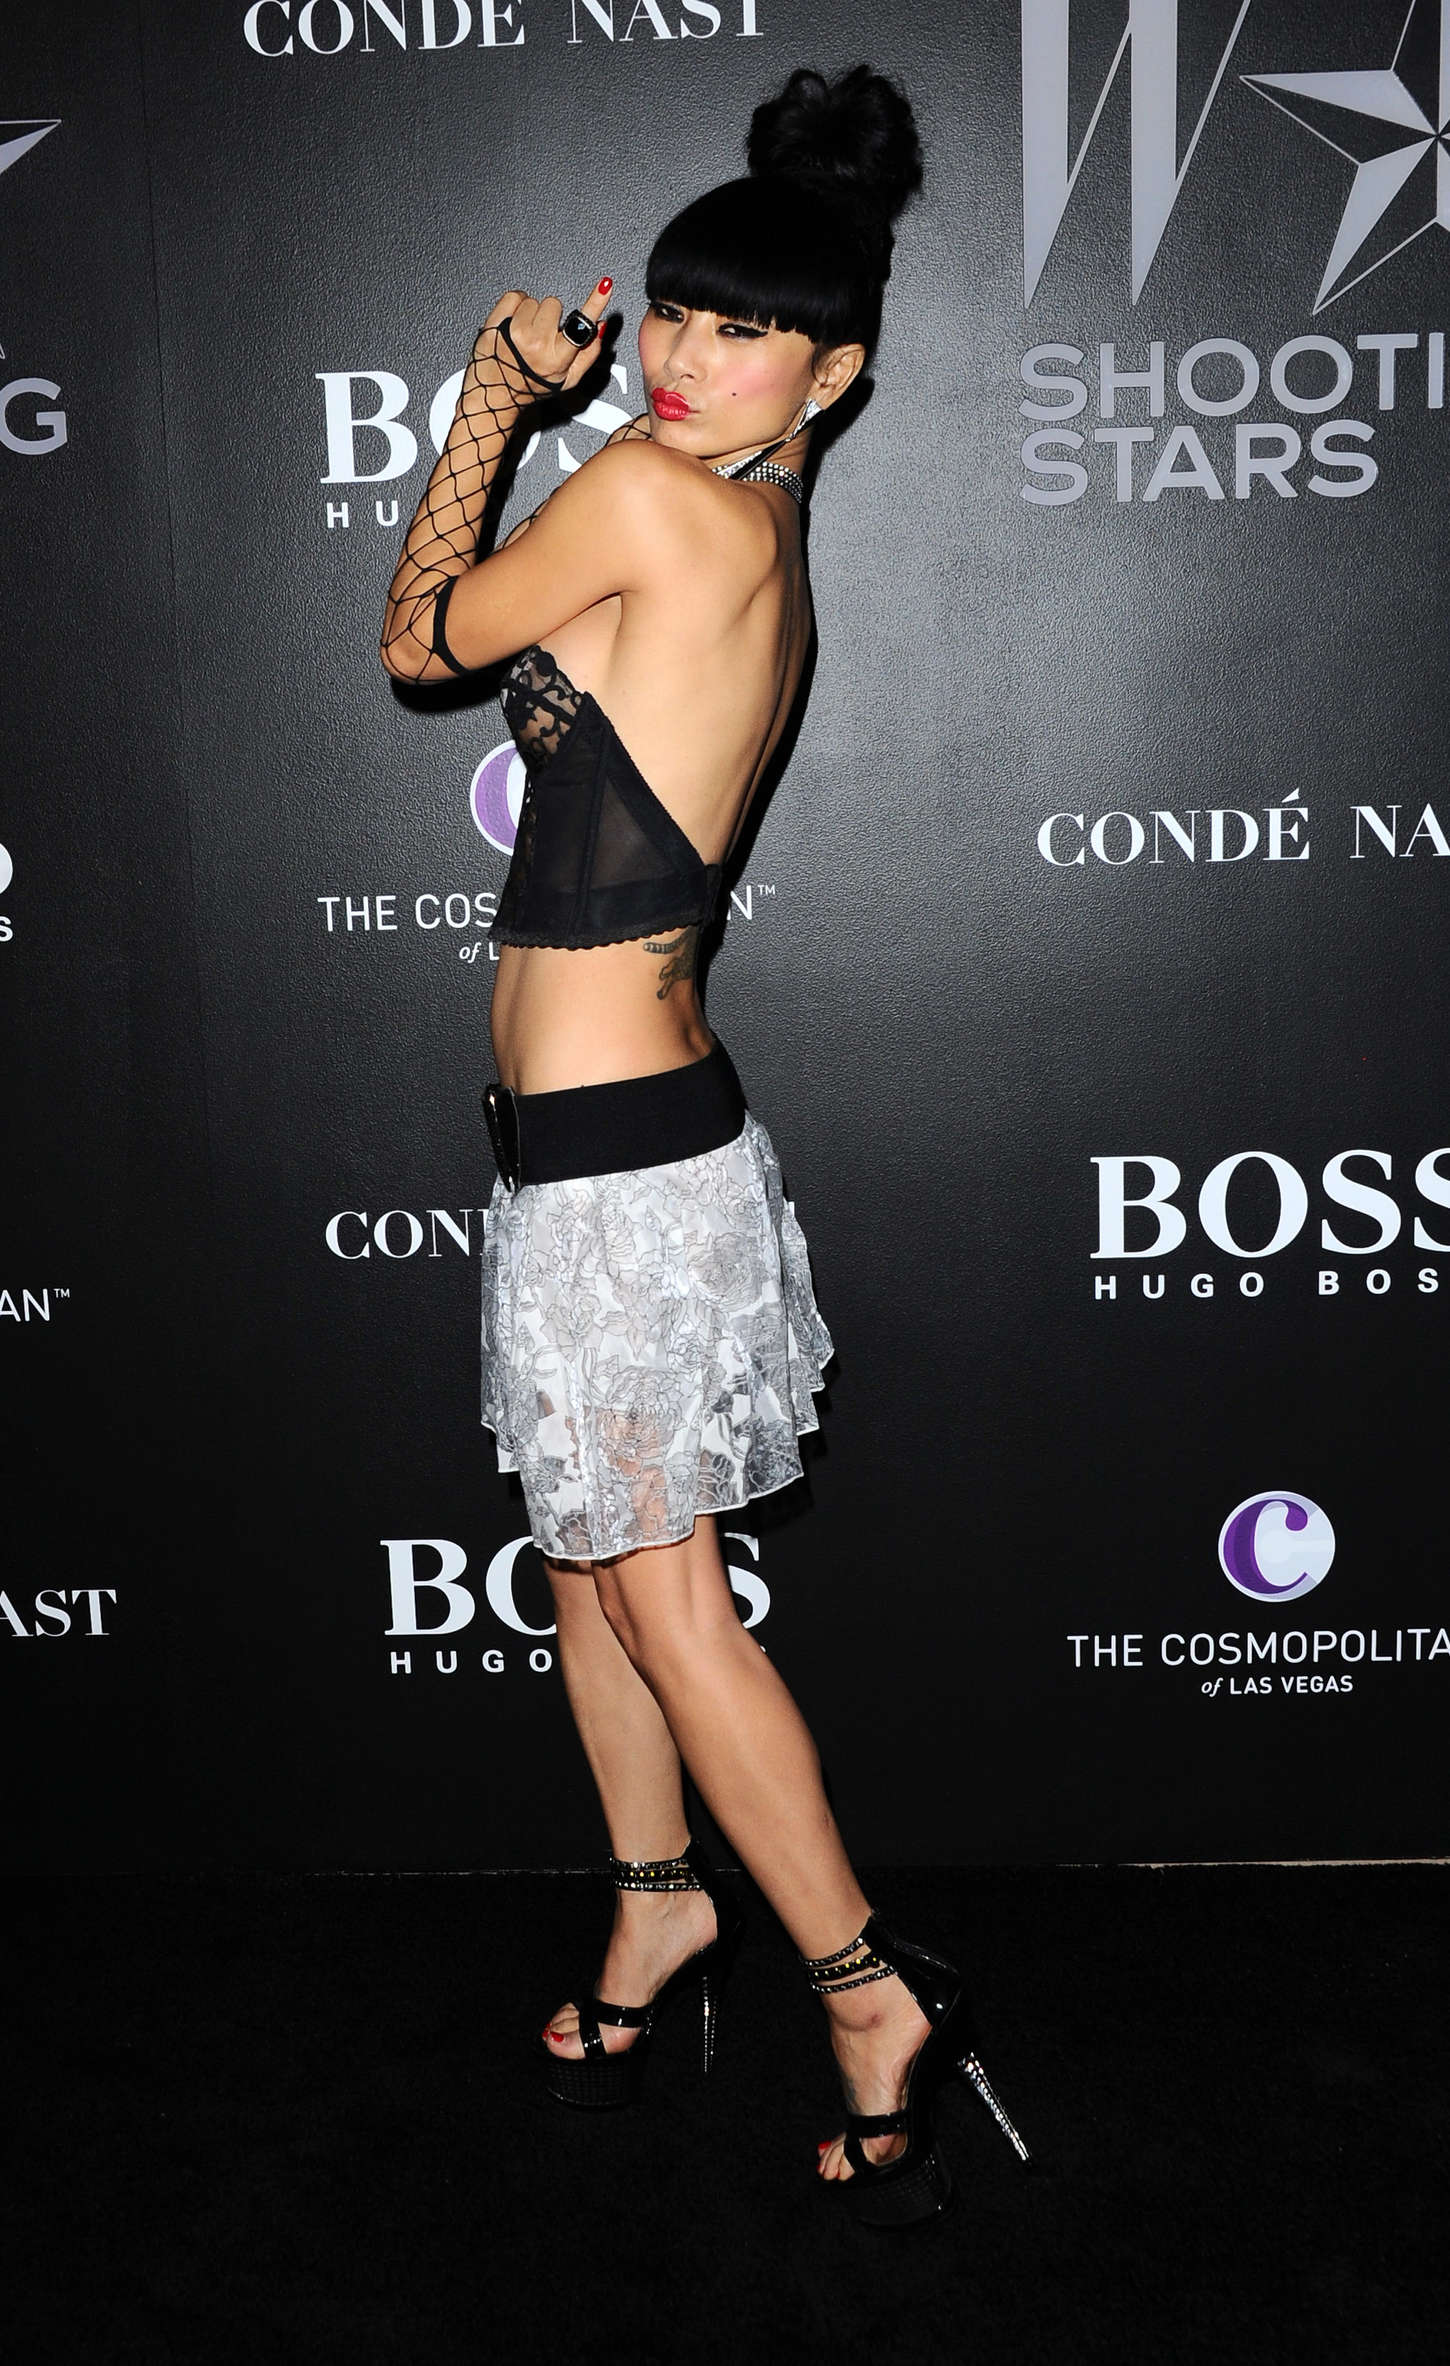 Bai ling star porncraft pictures